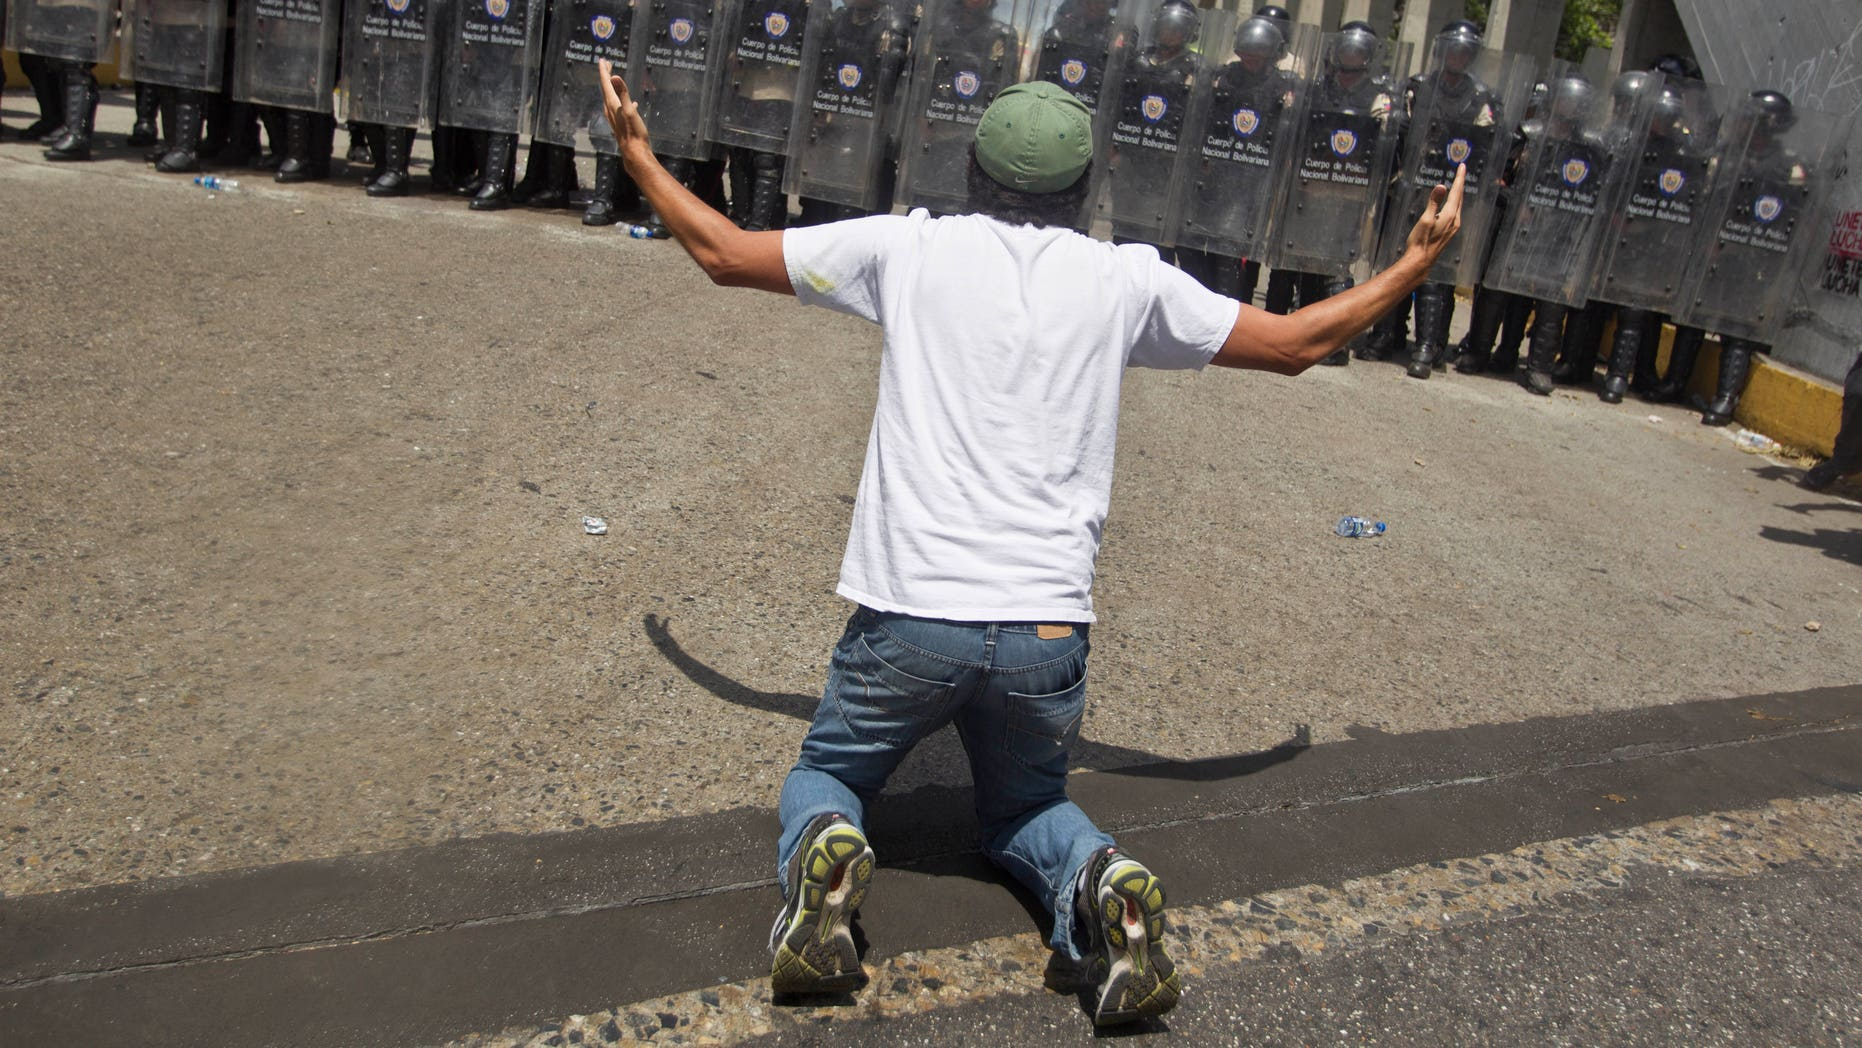 An anti-government demonsrator kneels in front of a formation of Bolivarian National Police in riot gear, during clashes at the Central University of Venezuela, UCV, in Caracas, Venezuela, Thursday, March 20, 2014. Thursday dawned with two more opposition politicians, San Cristobal Mayor Daniel Ceballos and San Diego Mayor Enzo Scarano, behind bars. Police used tear gas and water cannons to disperse a student-called protest of several thousand people in Caracas, some of those demonstrating against the arrests of the mayors. (AP Photo/Esteban Felix)